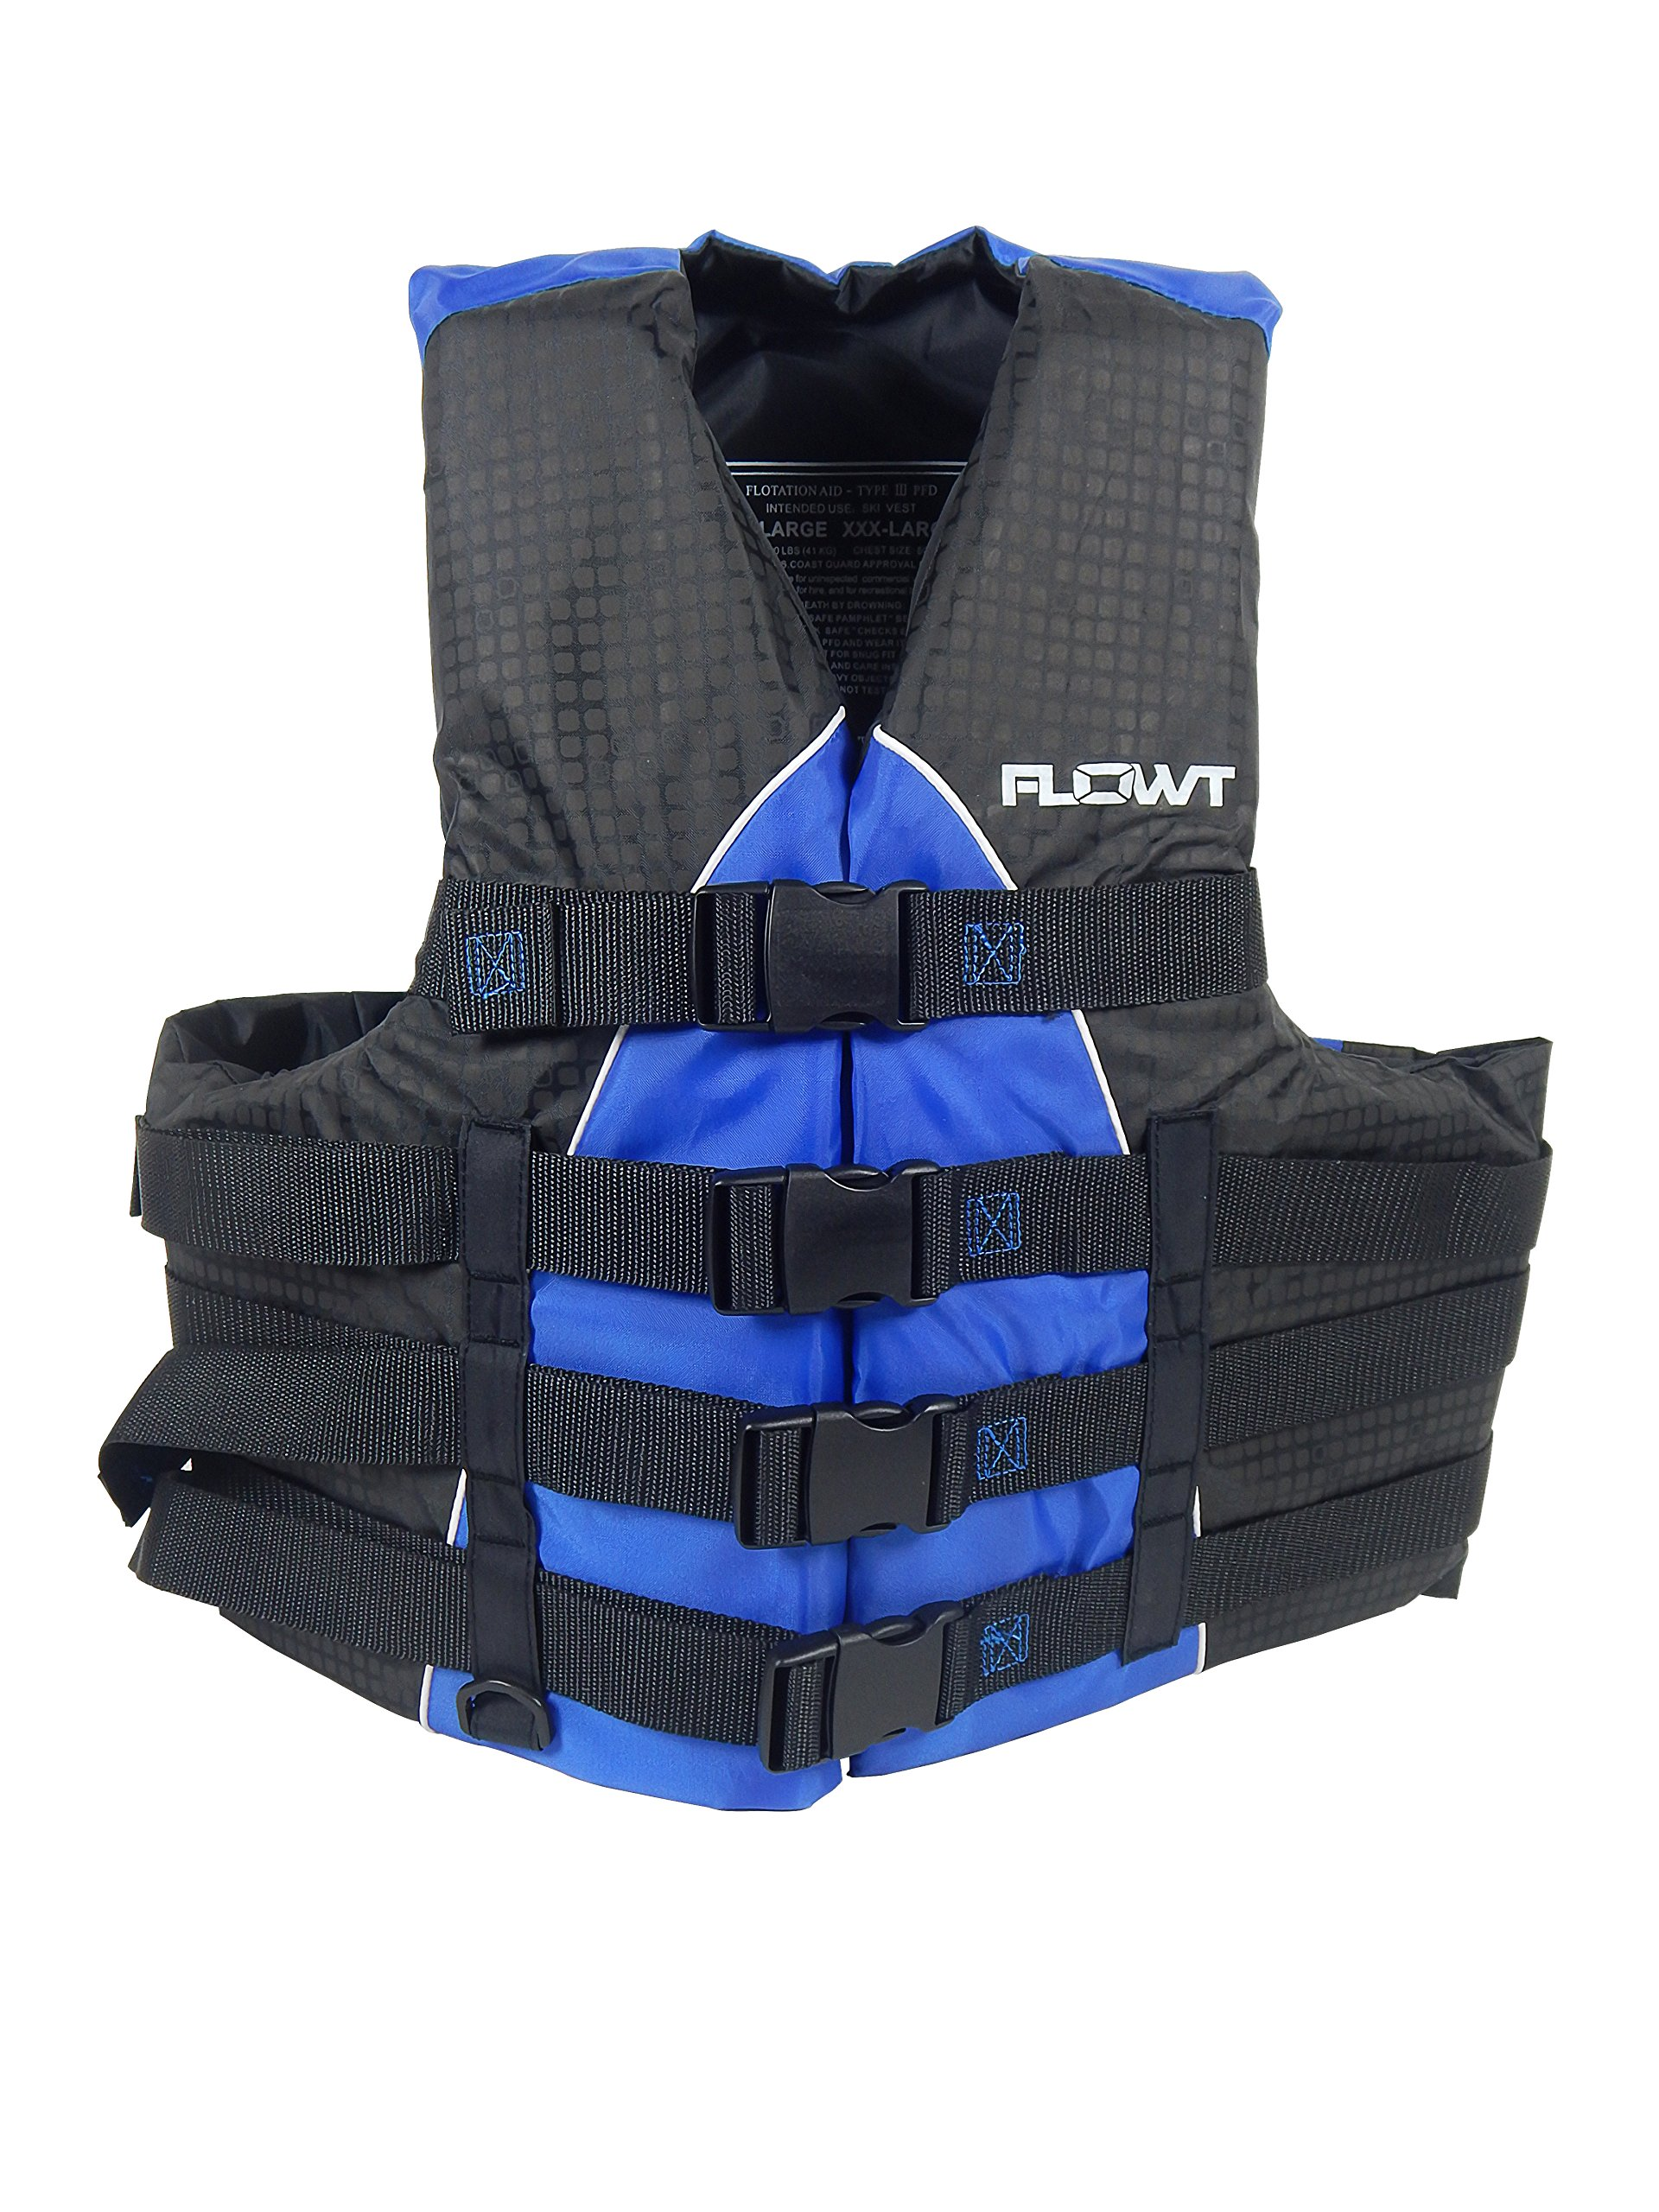 Flowt 40401-2-2X/3X Extreme Sport Life Vest, Type III PFD, Closed Sides, Blue, 2XL/3XL, Fits chest sizes 50'' - 60'' by Flowt